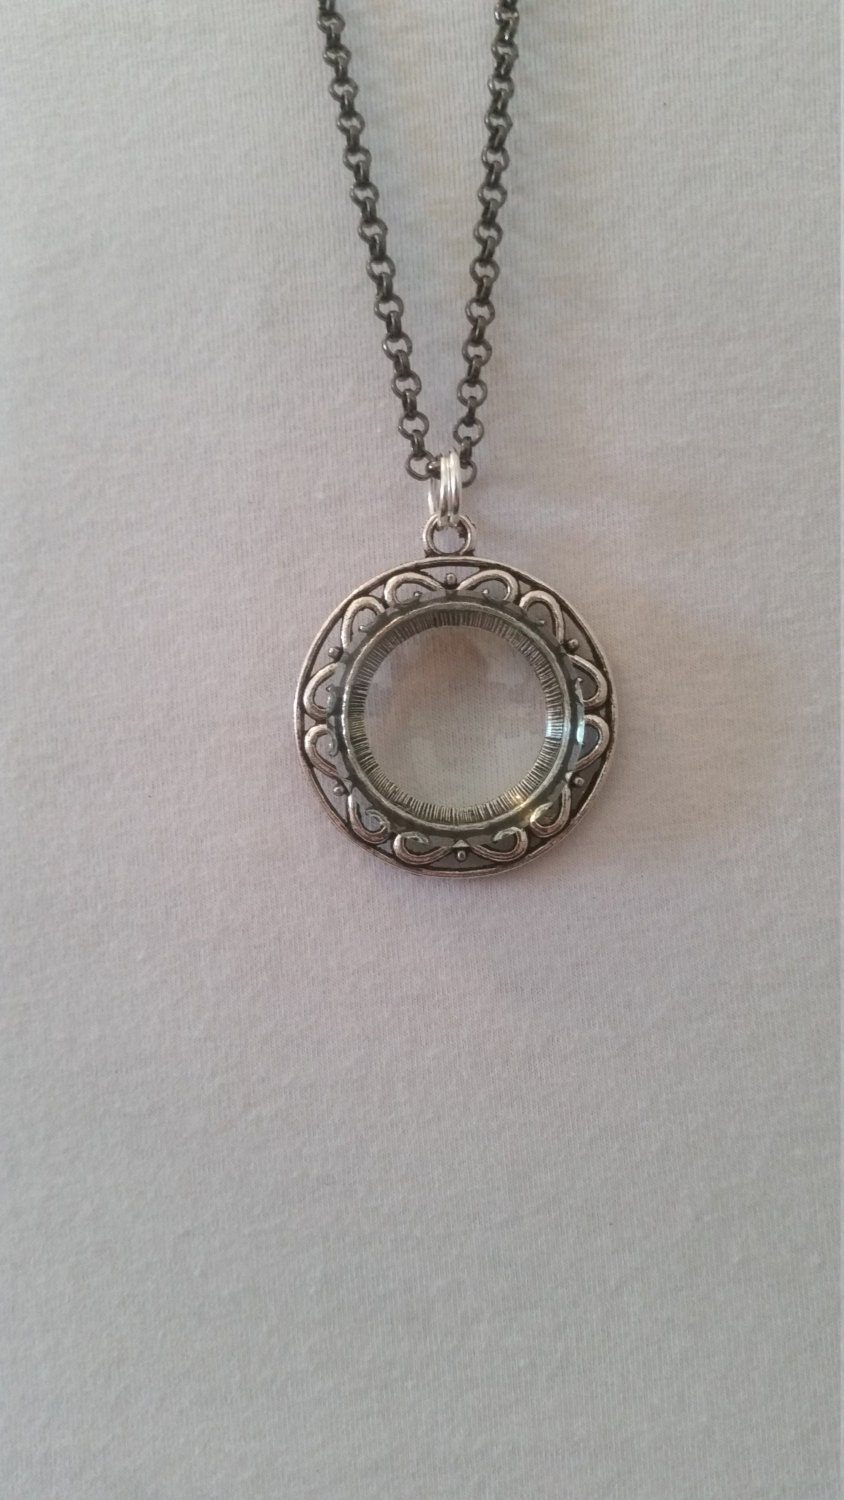 magnifying glass necklace pendant silver black chain